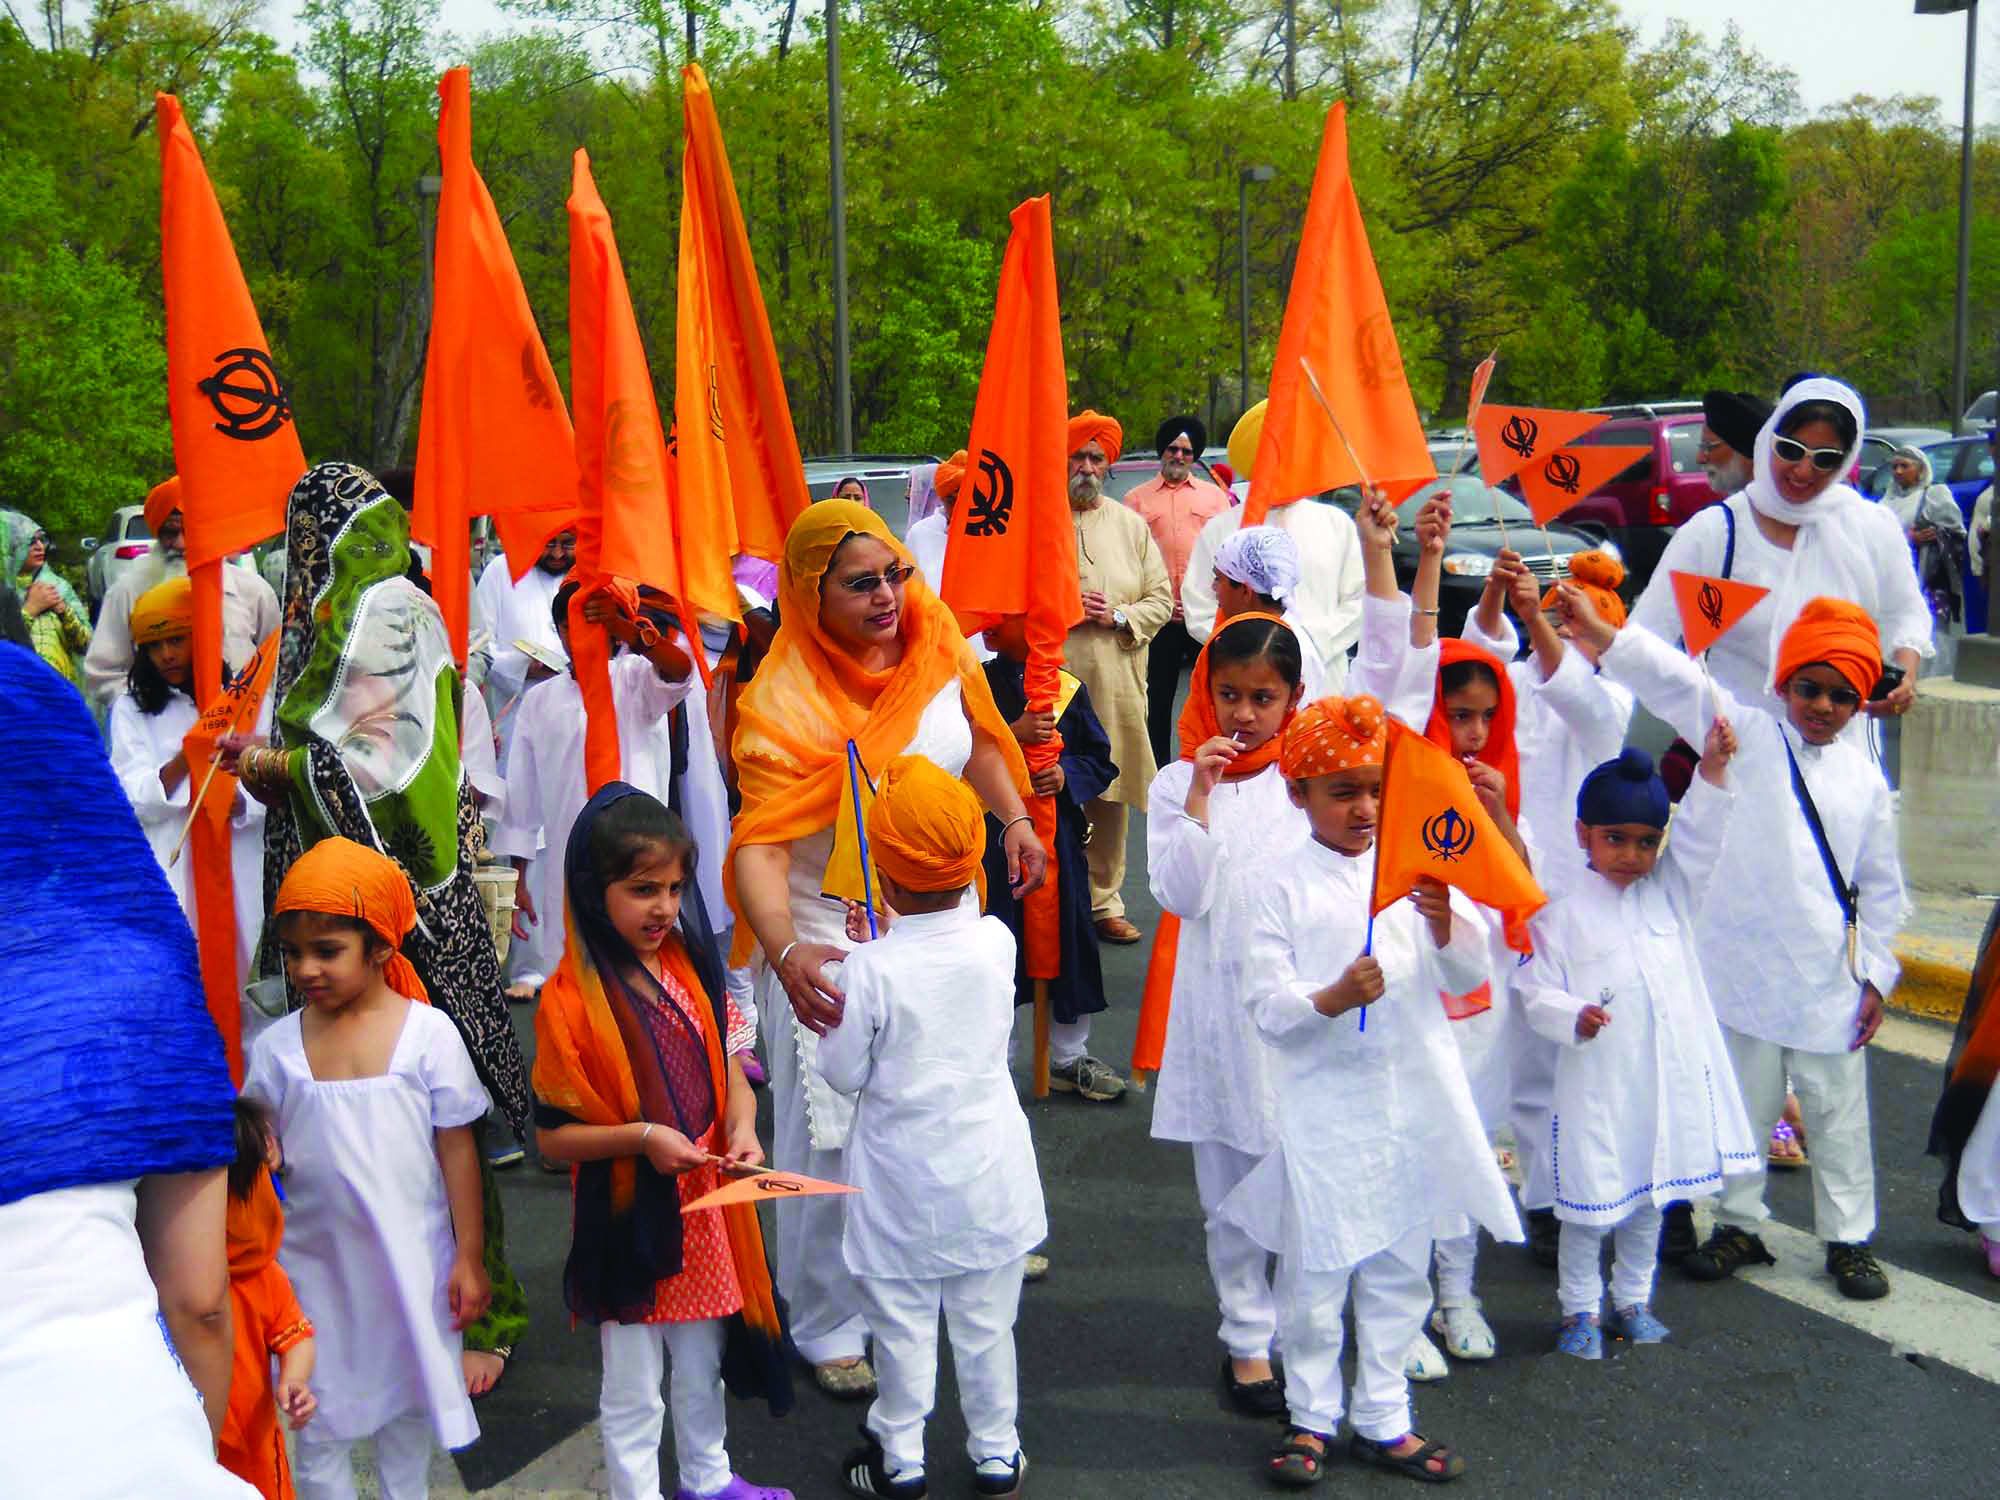 Vaisakhi's message rejuvenates tradition and engages